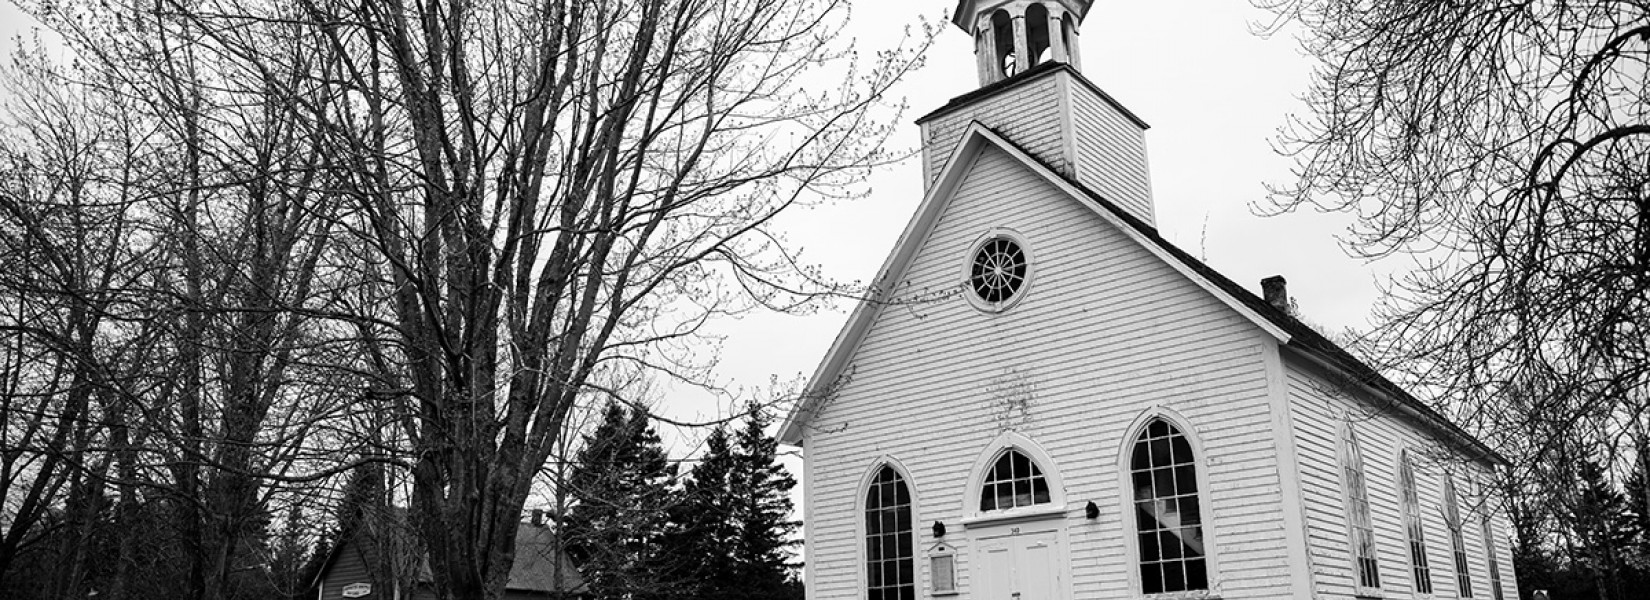 The old and abandoned Protestant church